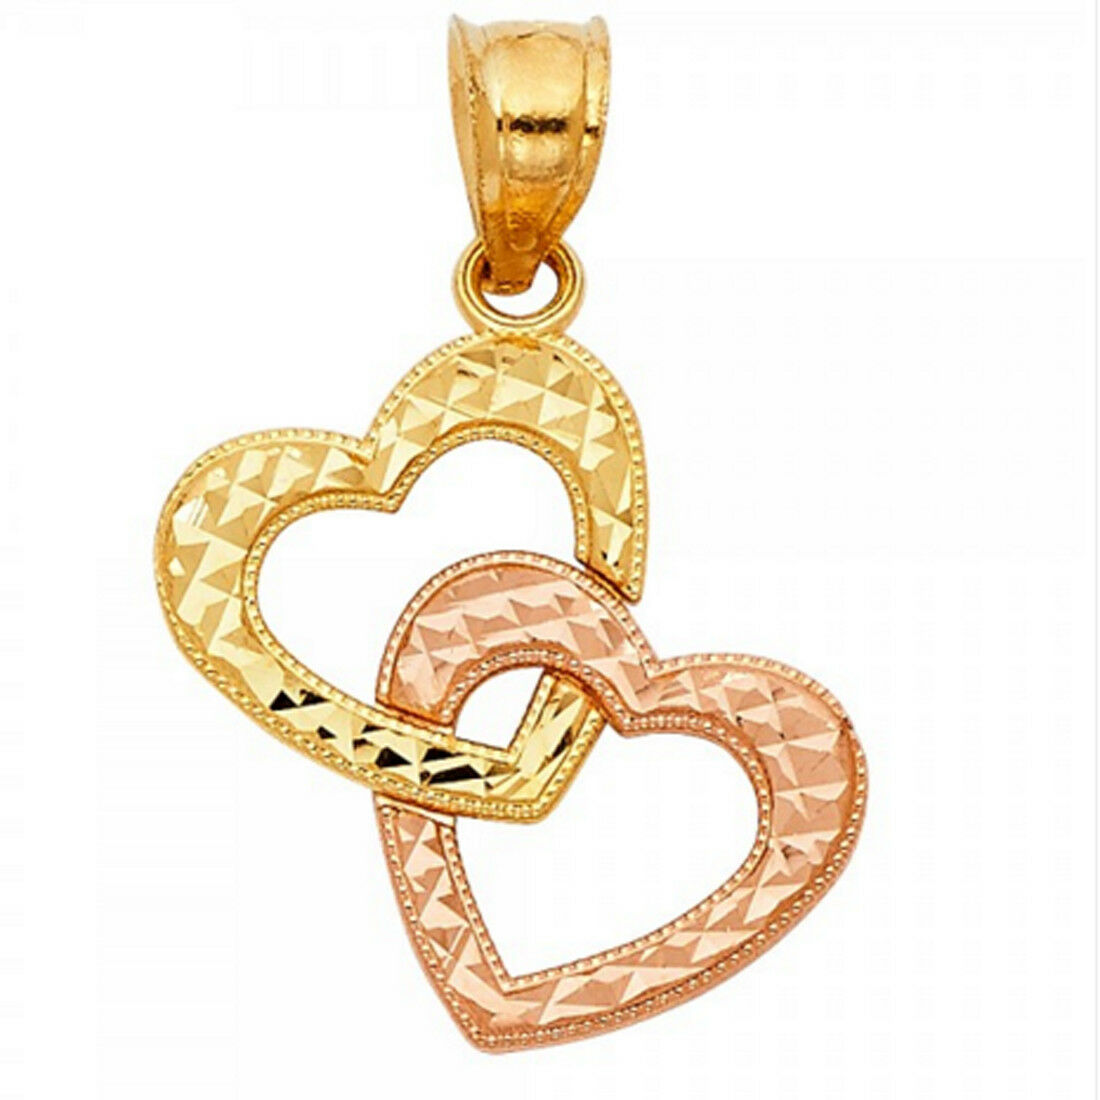 New Double Heart Charm Diamond Cut 14k Solid Two Tone Yellow & pink gold Pendant